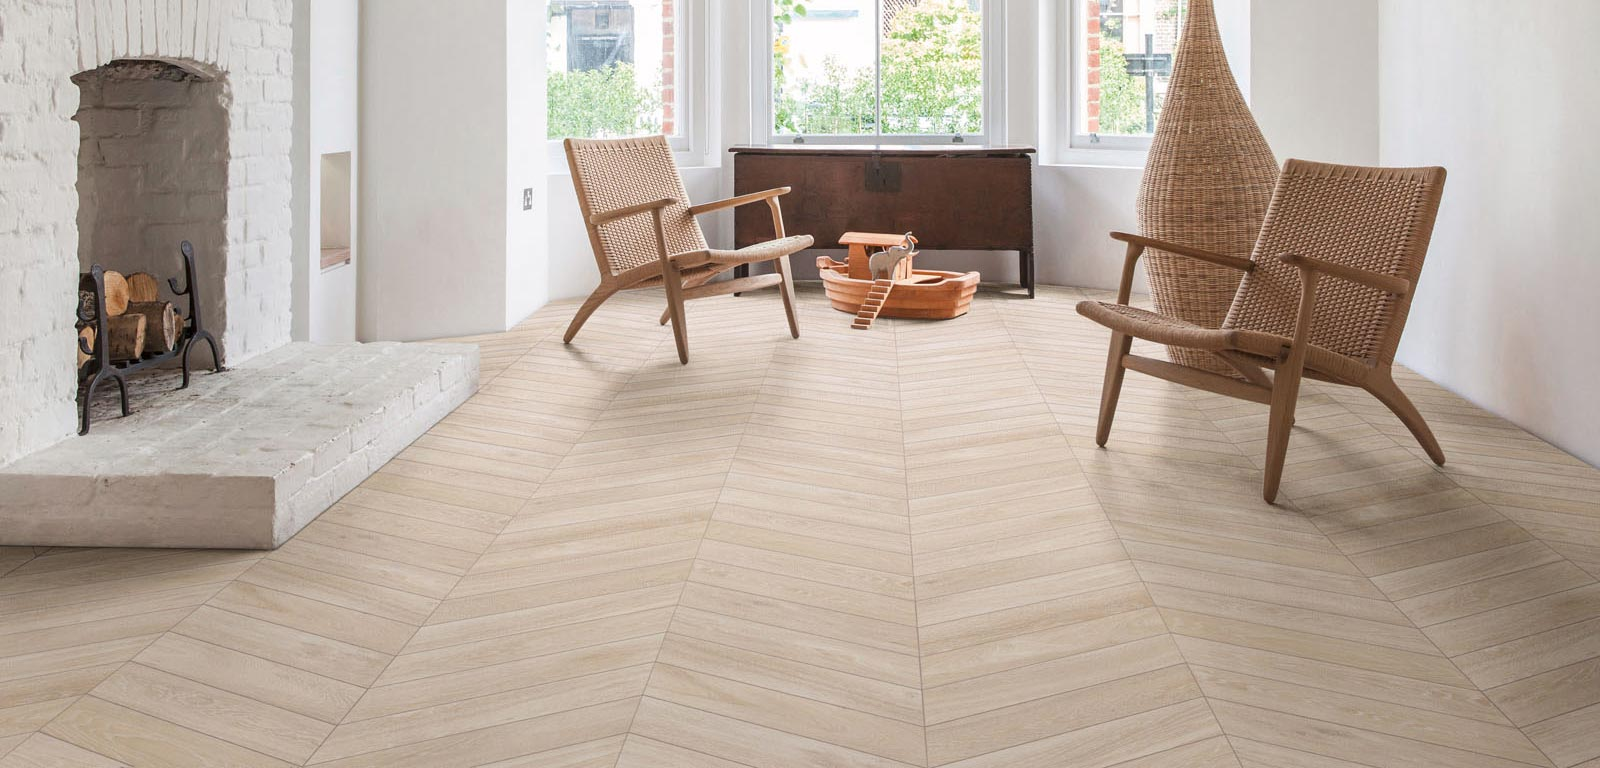 Woodchoice, the wood-effect stoneware that recalls the parquet of bygone days